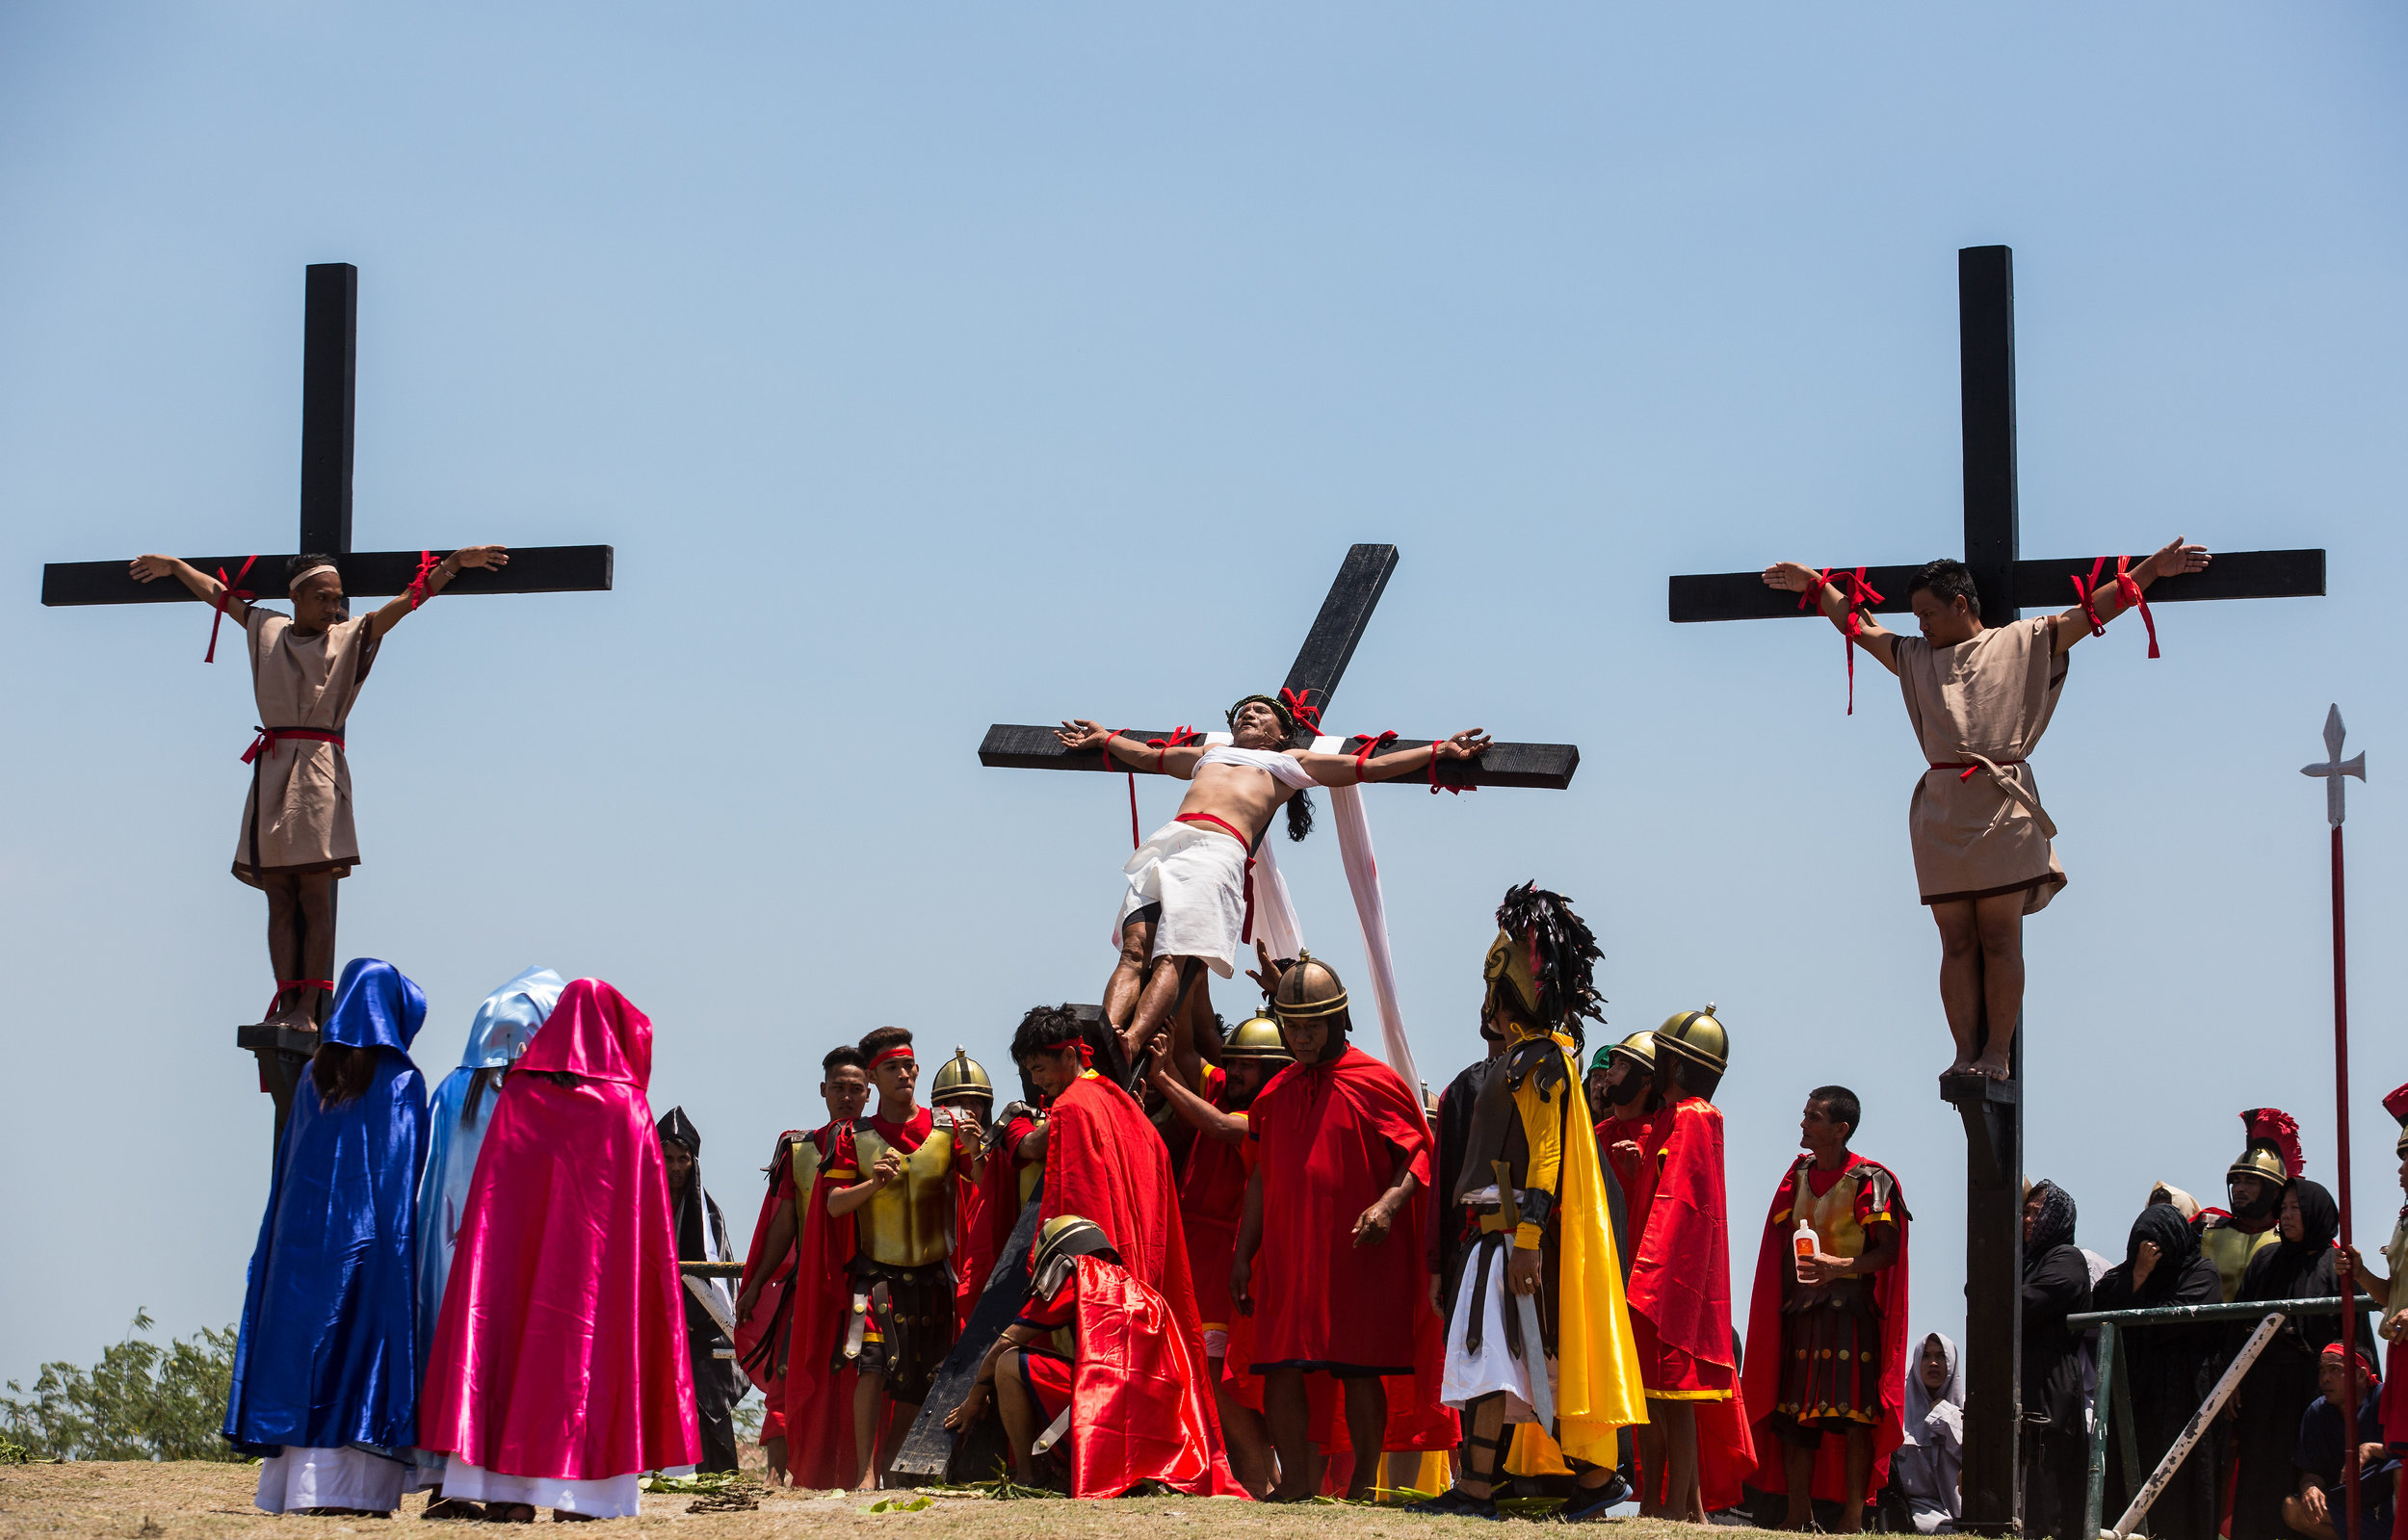 Filipino penitents self flagellating on Good Friday